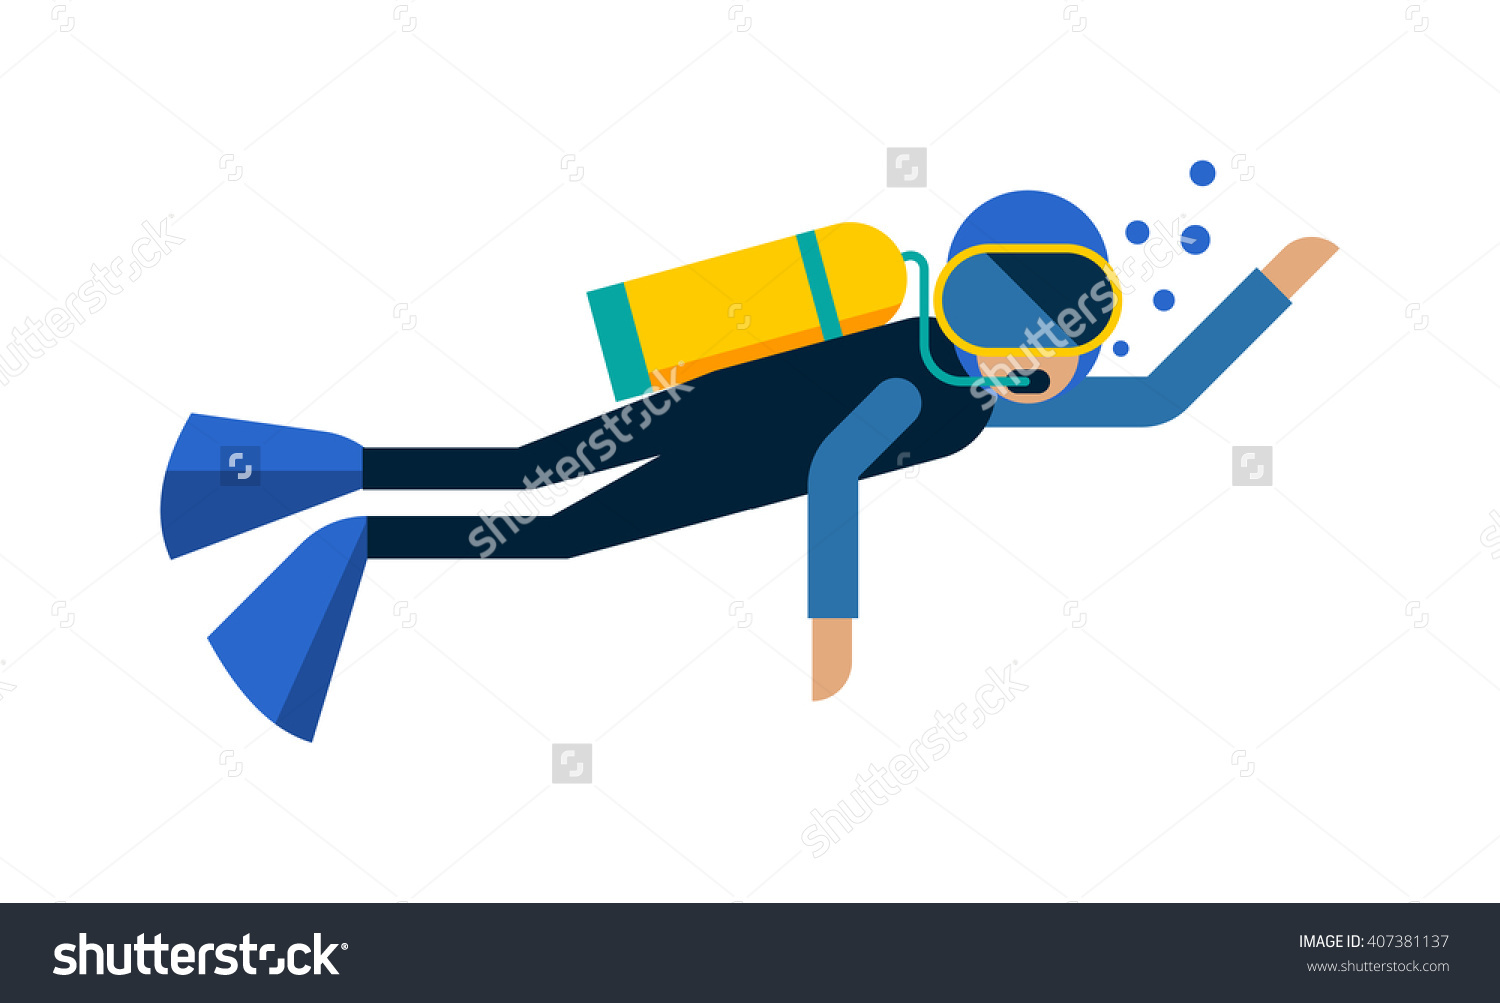 Uncategorized How To Draw A Scuba Diver team espresso official topic discuss scratch either procyon or altion will draw the scuba diver heres a base